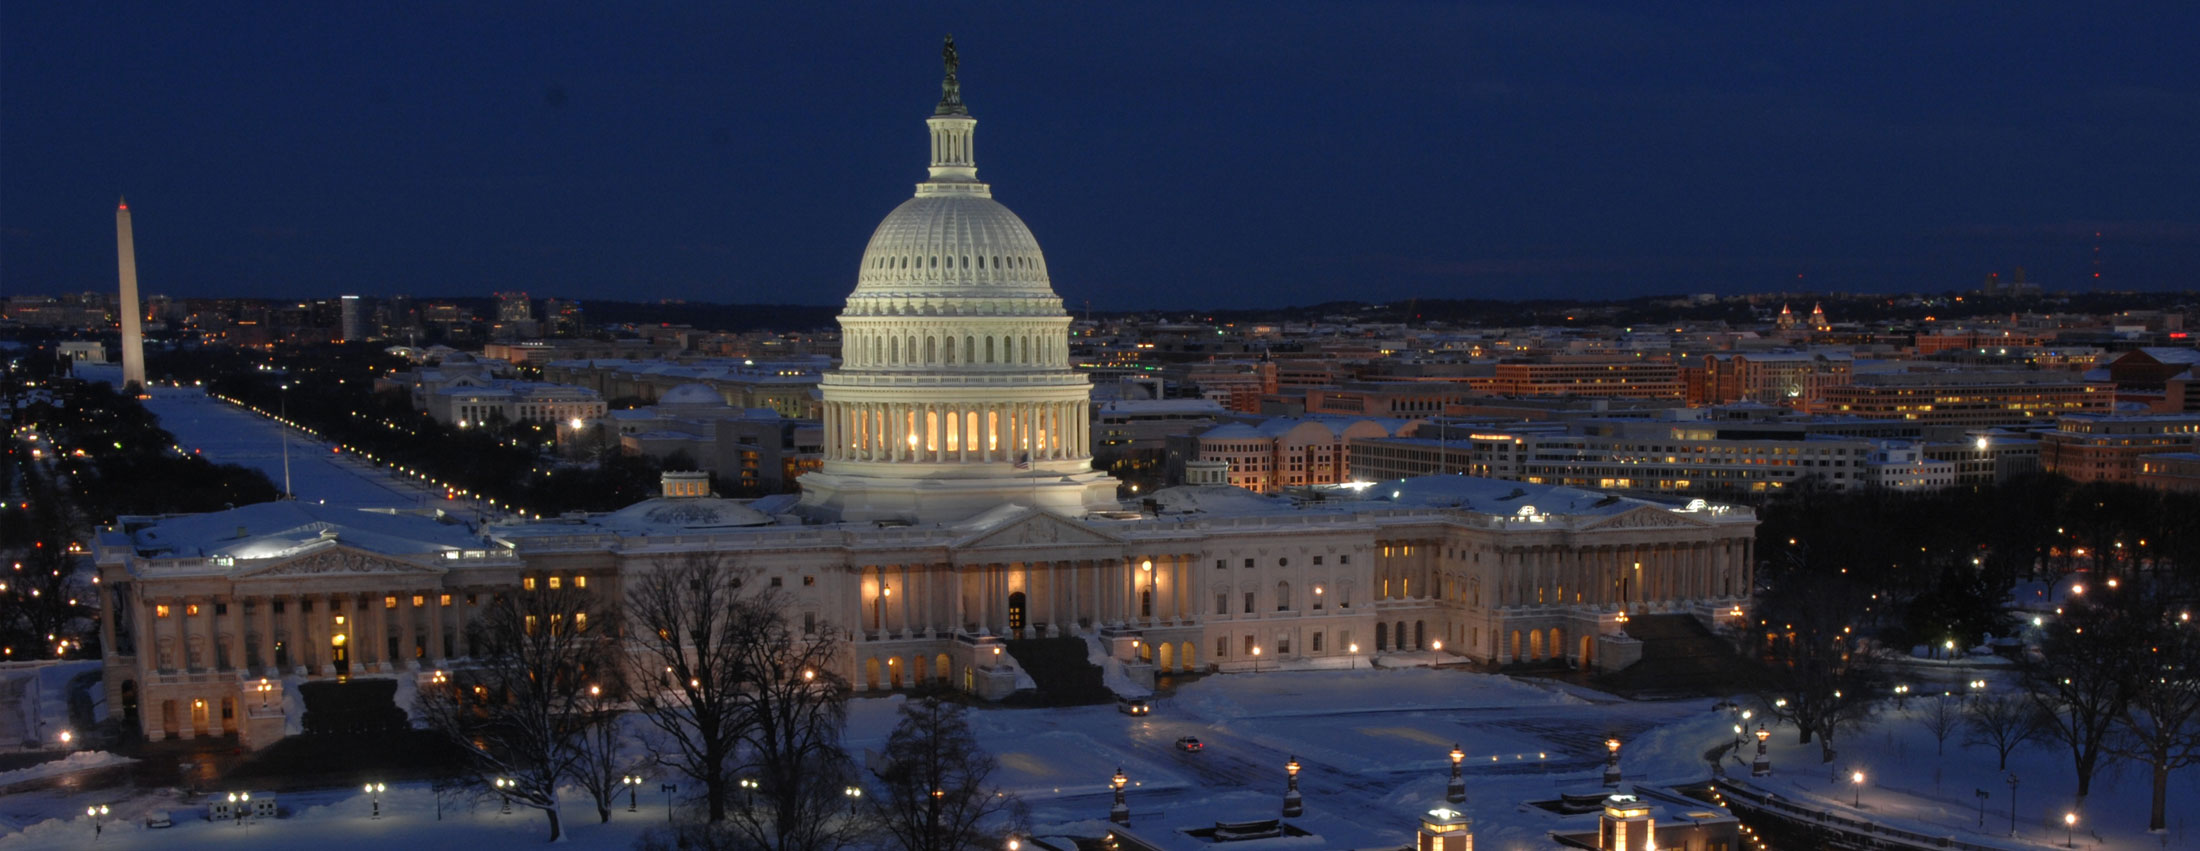 Image of Capital Building at night